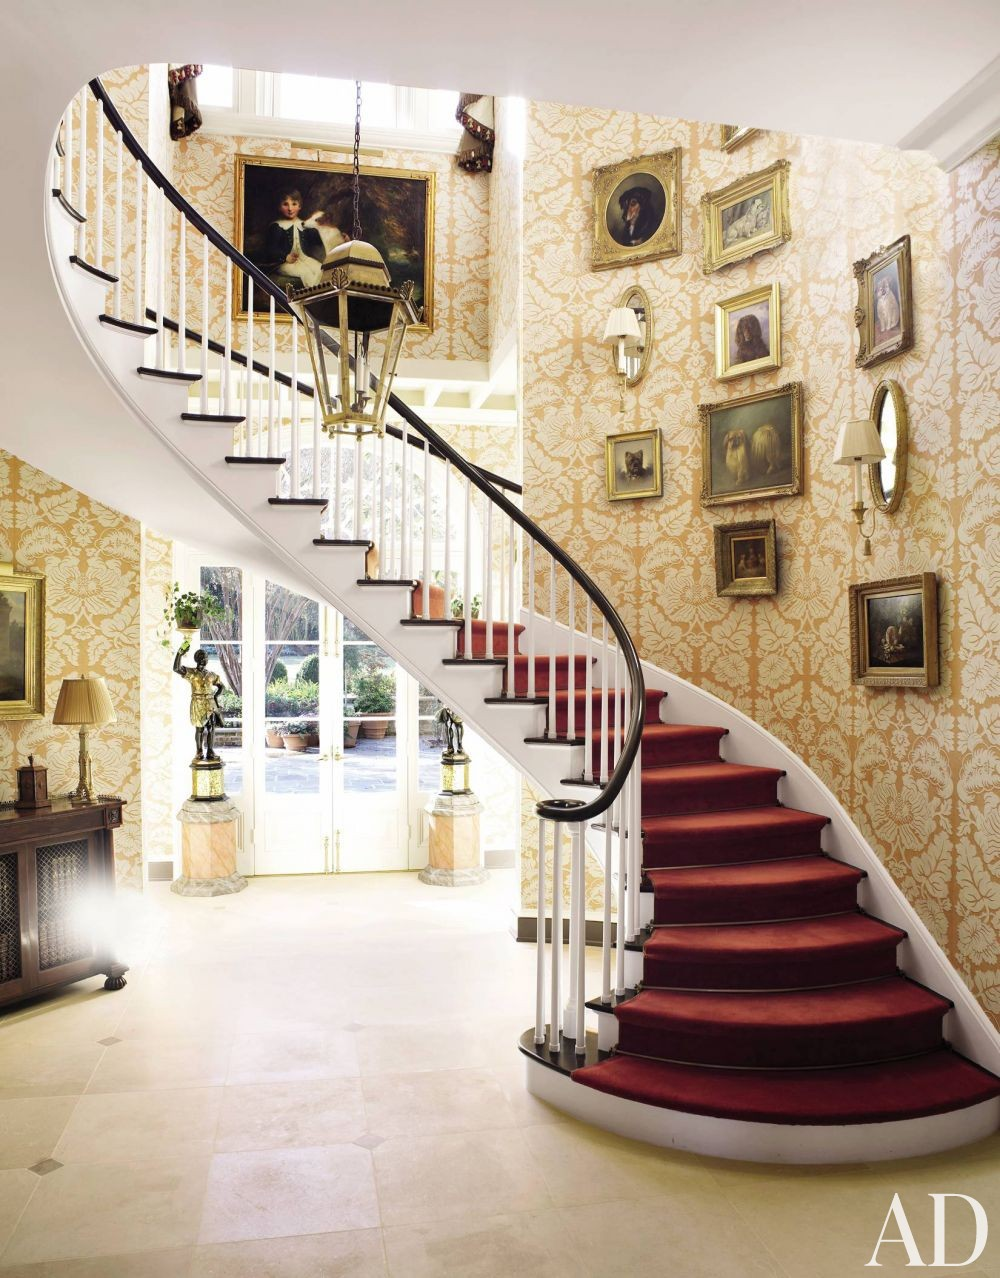 Traditional Staircase/Hallway by Richard Keith Langham, Inc. and Lewis Graeber III & Associates in Hattiesburg, Mississippi